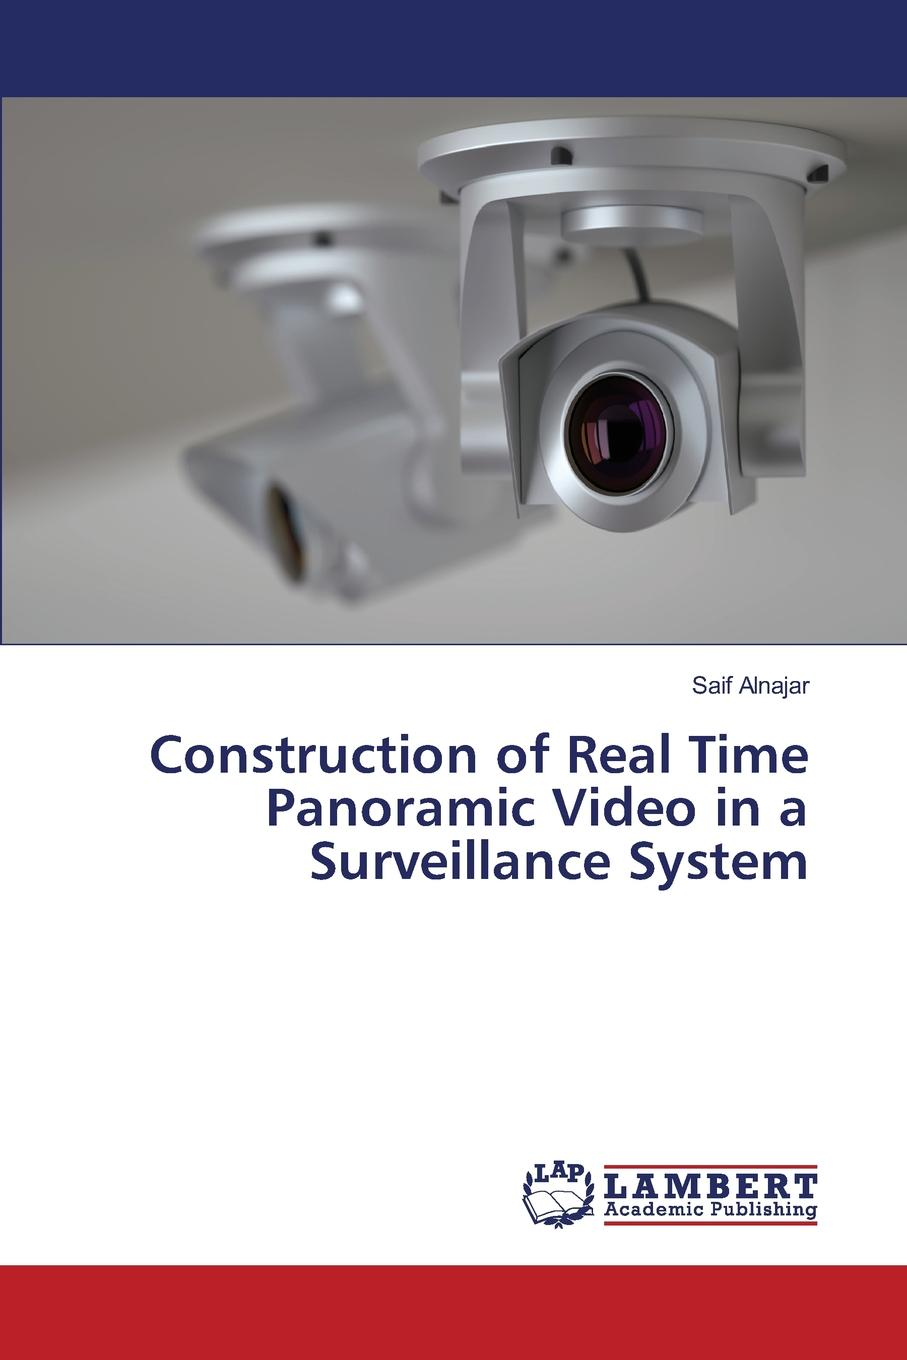 Alnajar Saif Construction of Real Time Panoramic Video in a Surveillance System